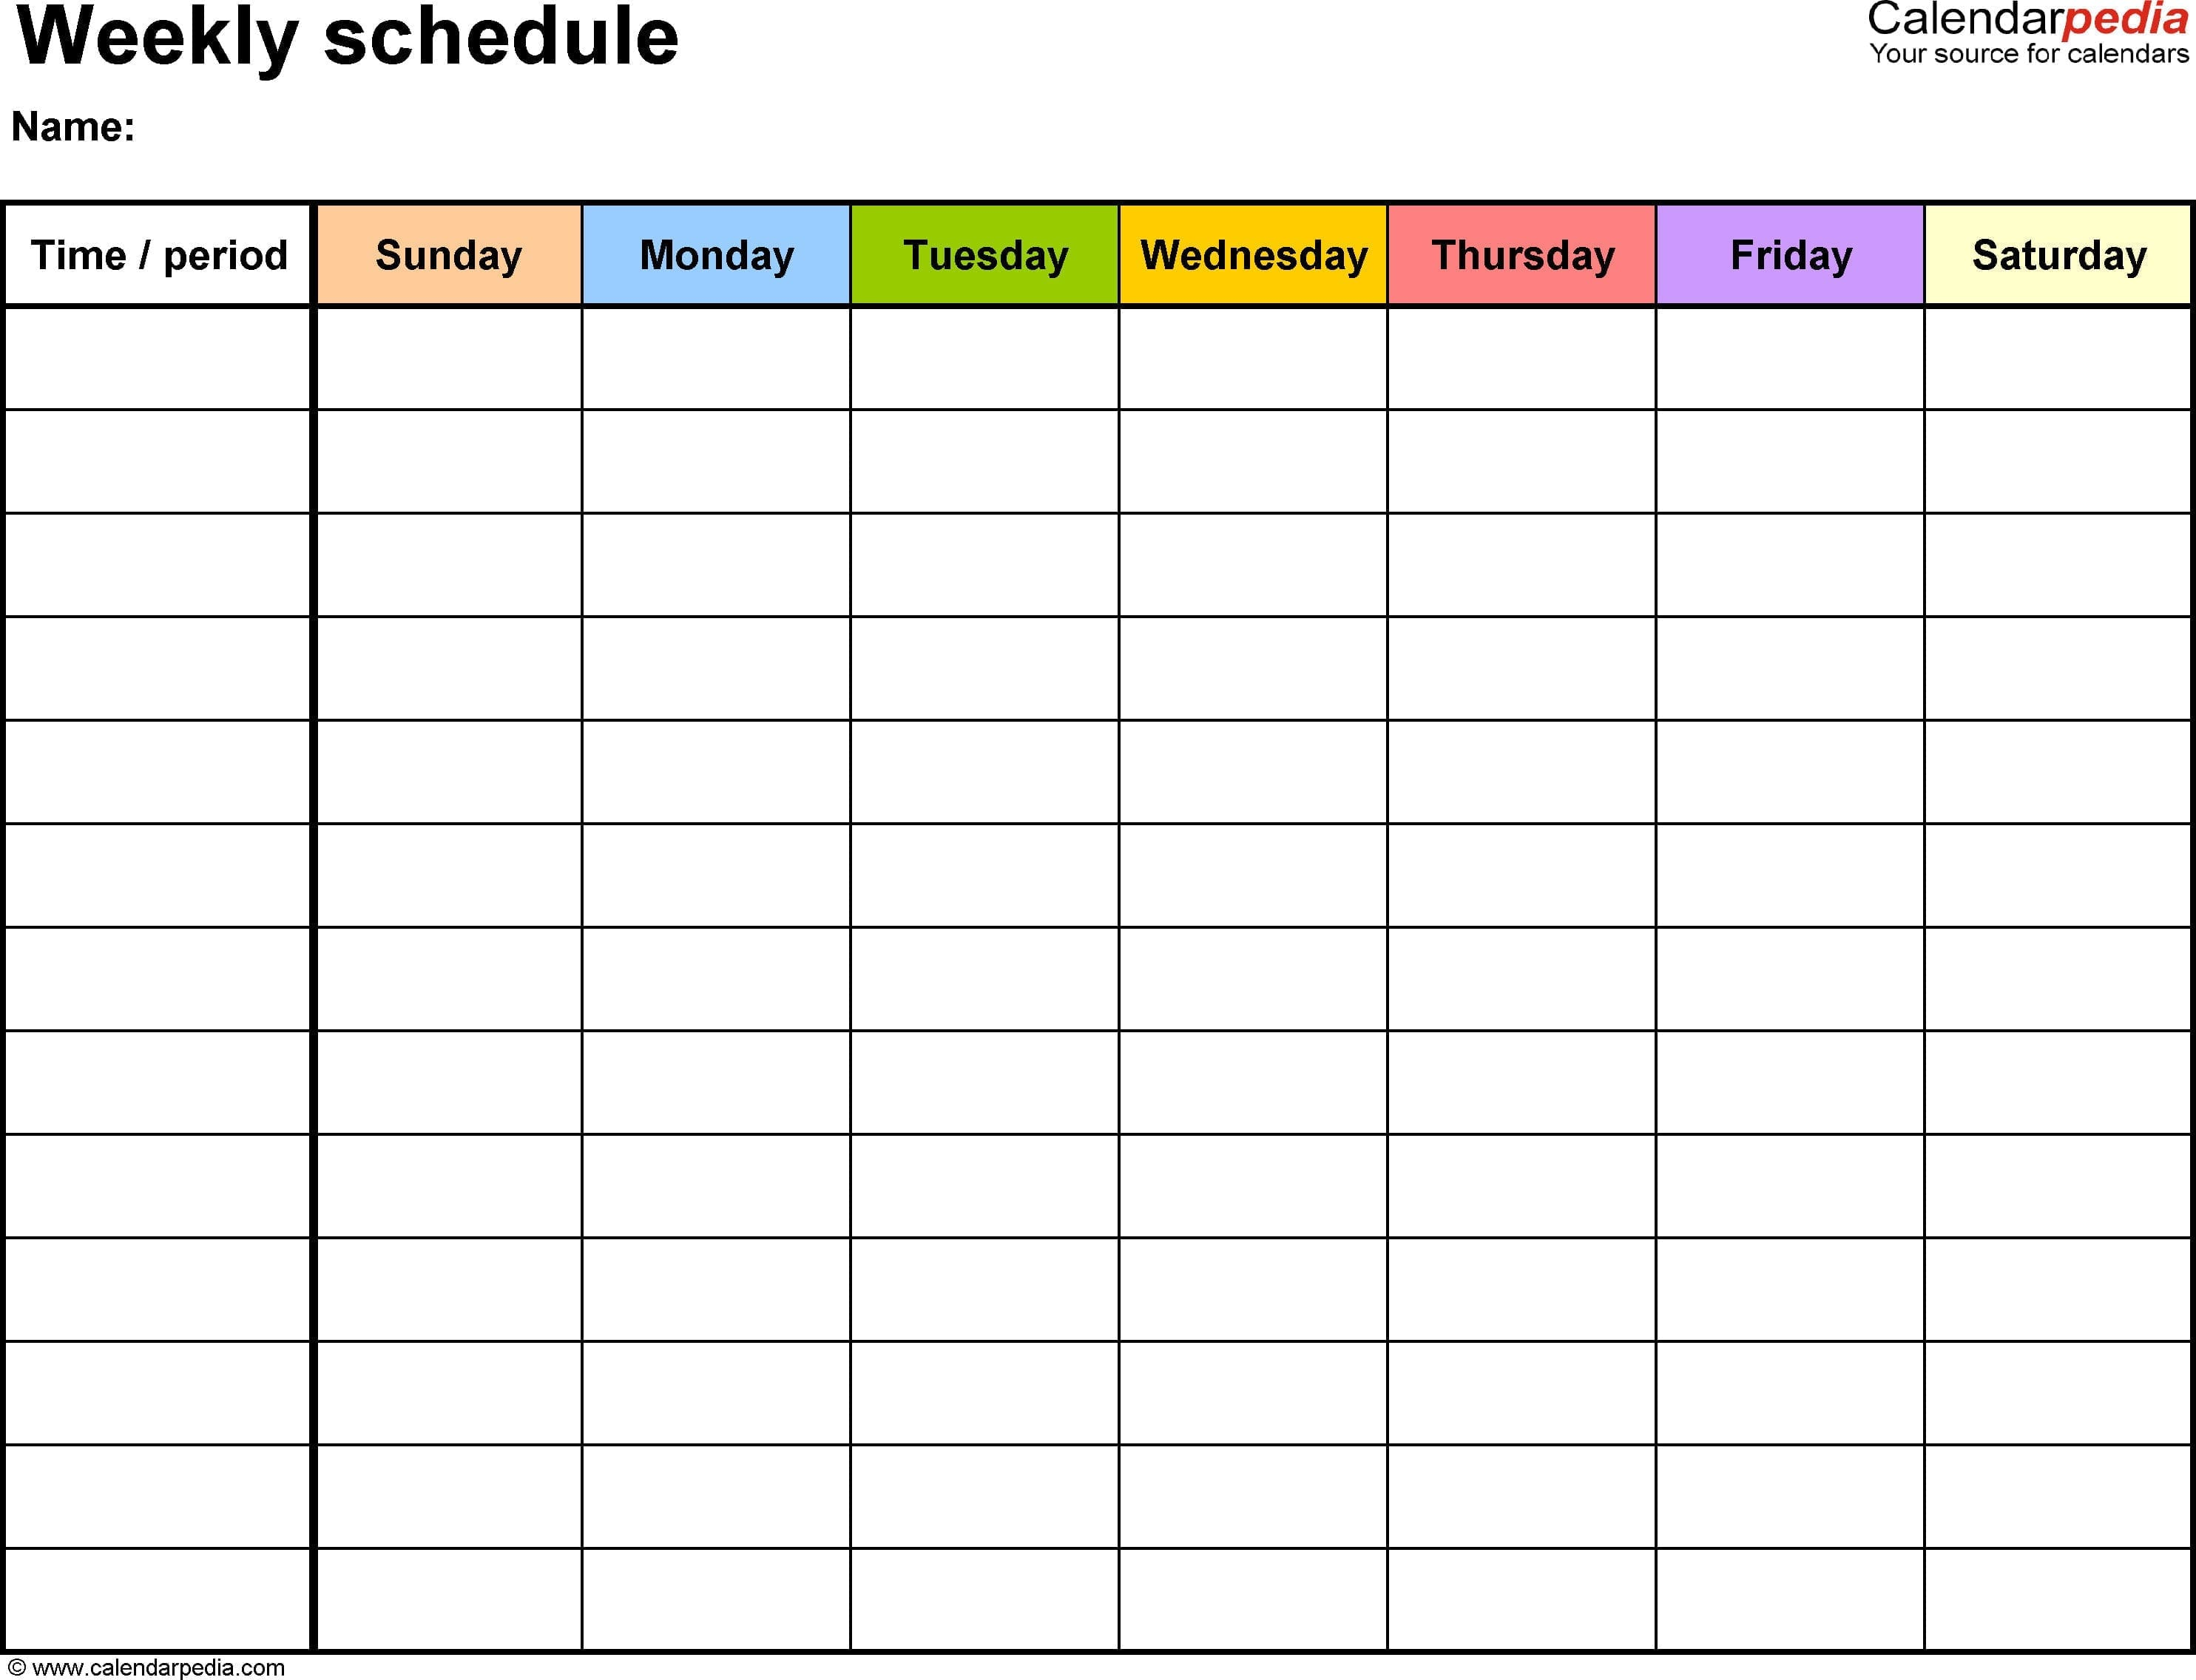 Free Weekly Schedule Templates For Excel  18 Templates With Schedule Worksheet Templates